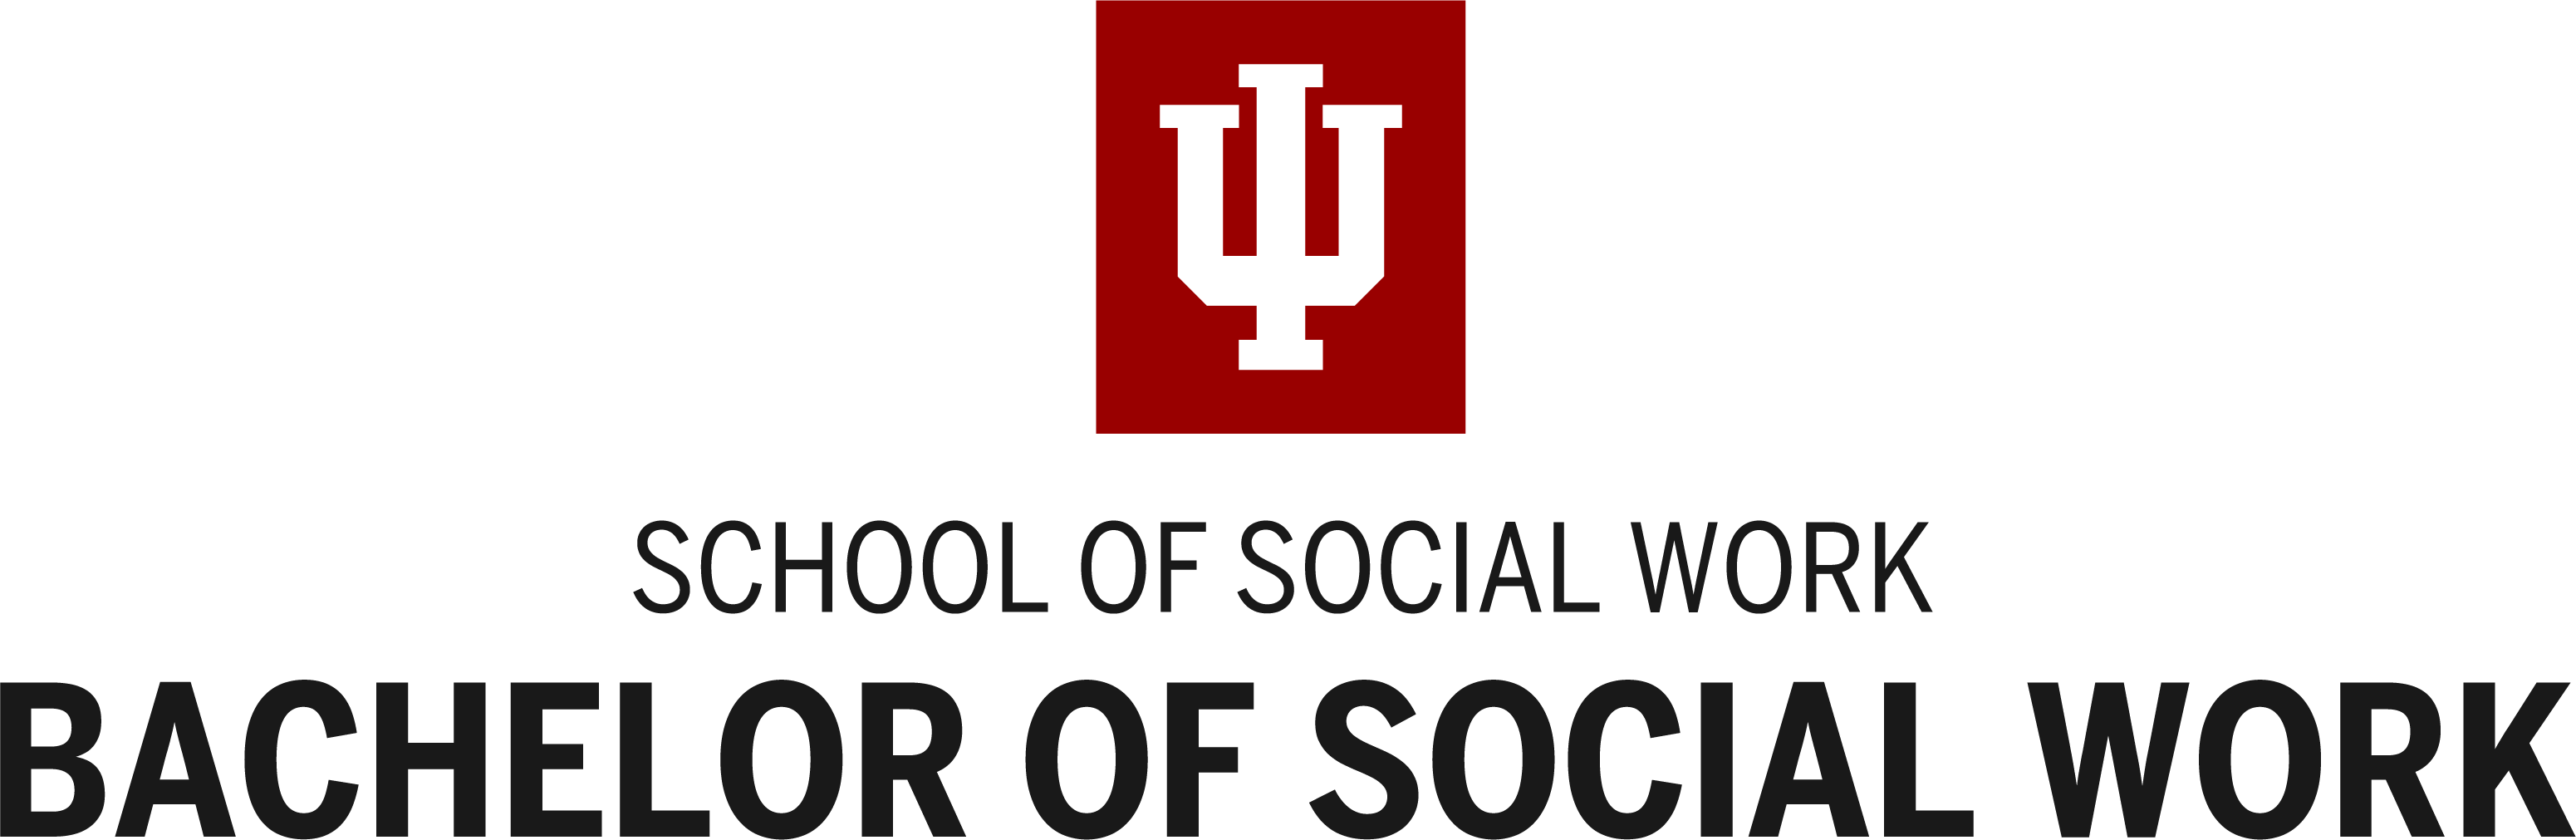 School of Social Work BSW Program